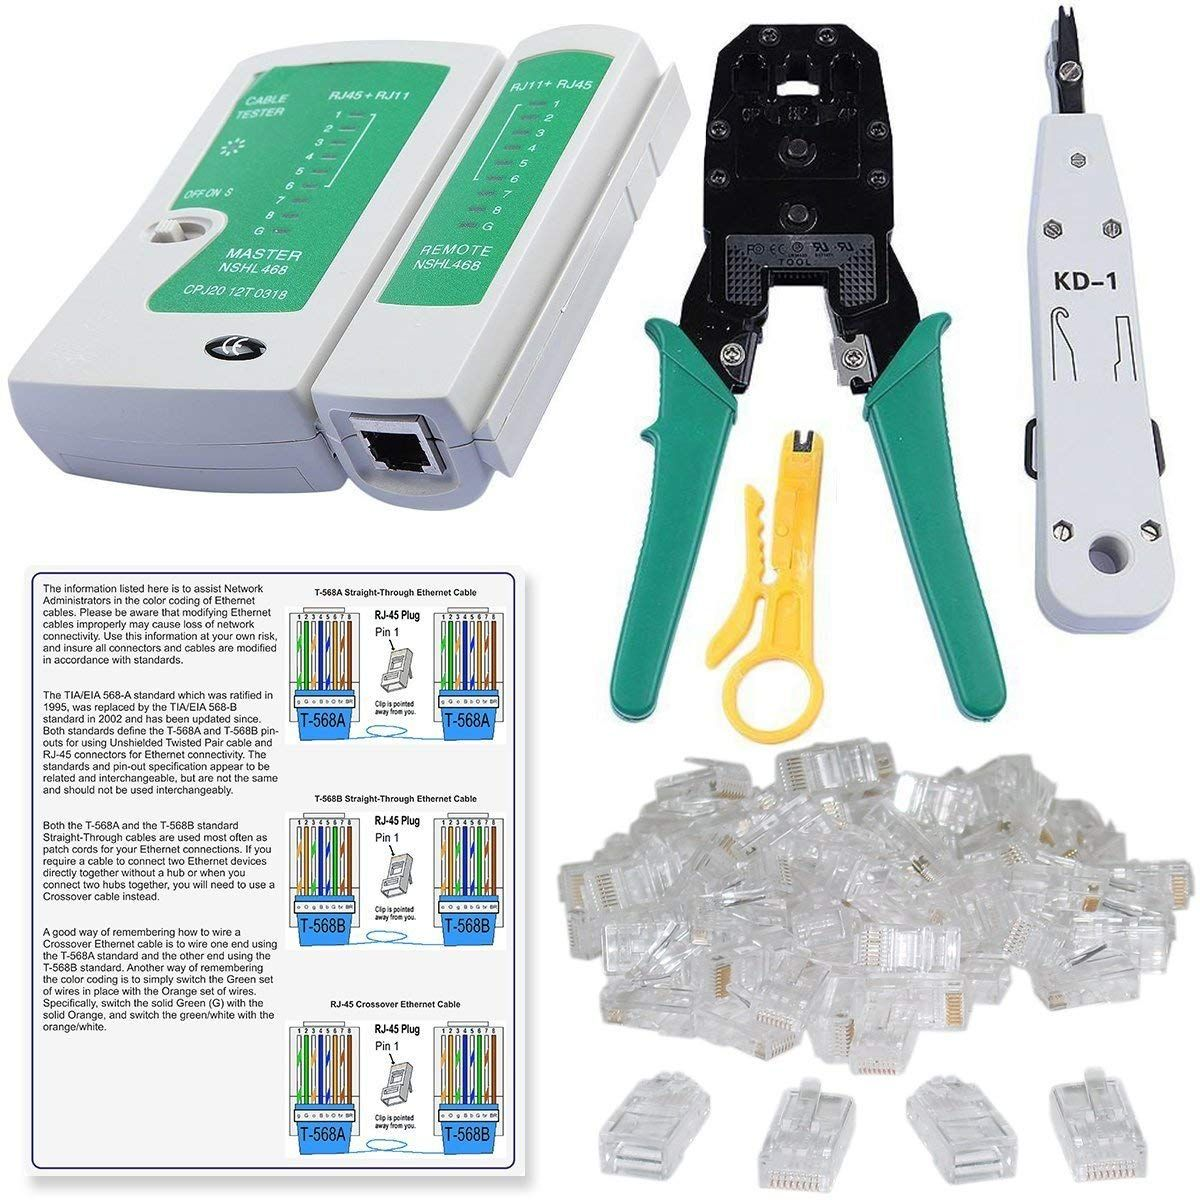 Shopee Rj45 Rj11 Crimping Tool Kd 1 Professional Punch Down Lan